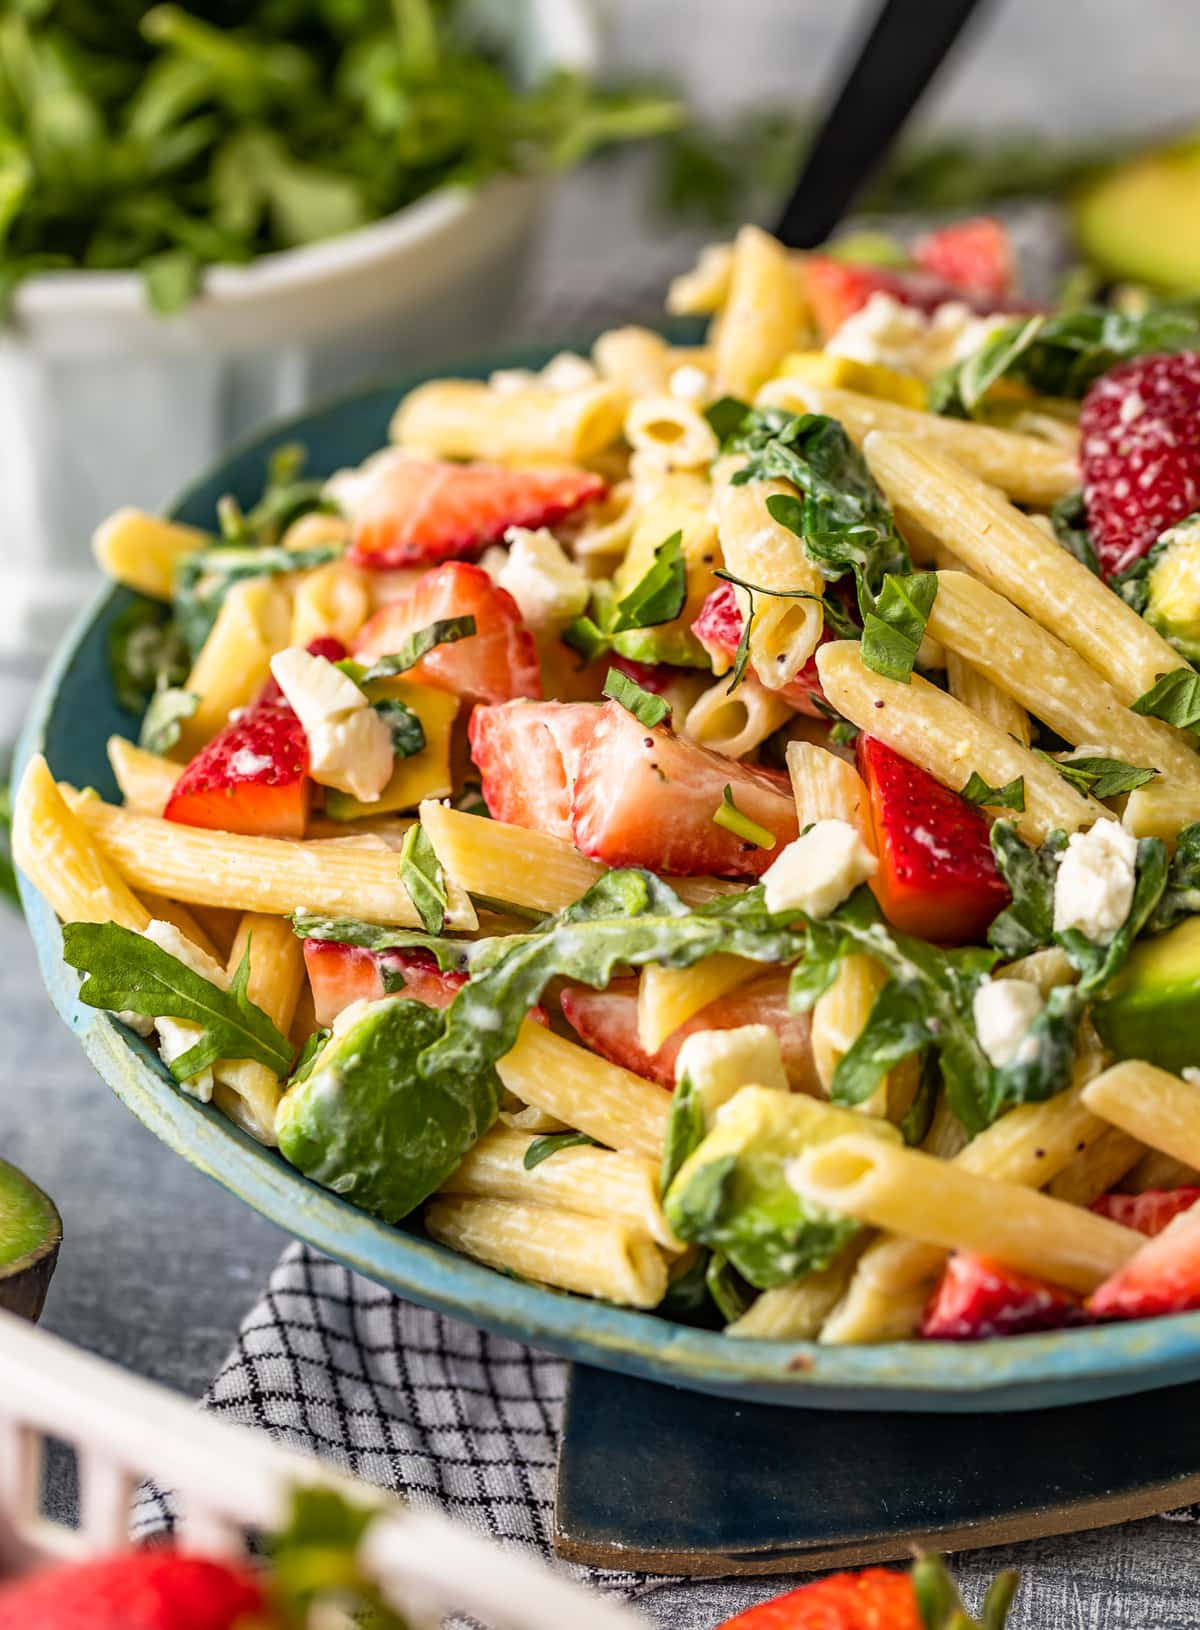 strawberry avocado salad with penne pasta